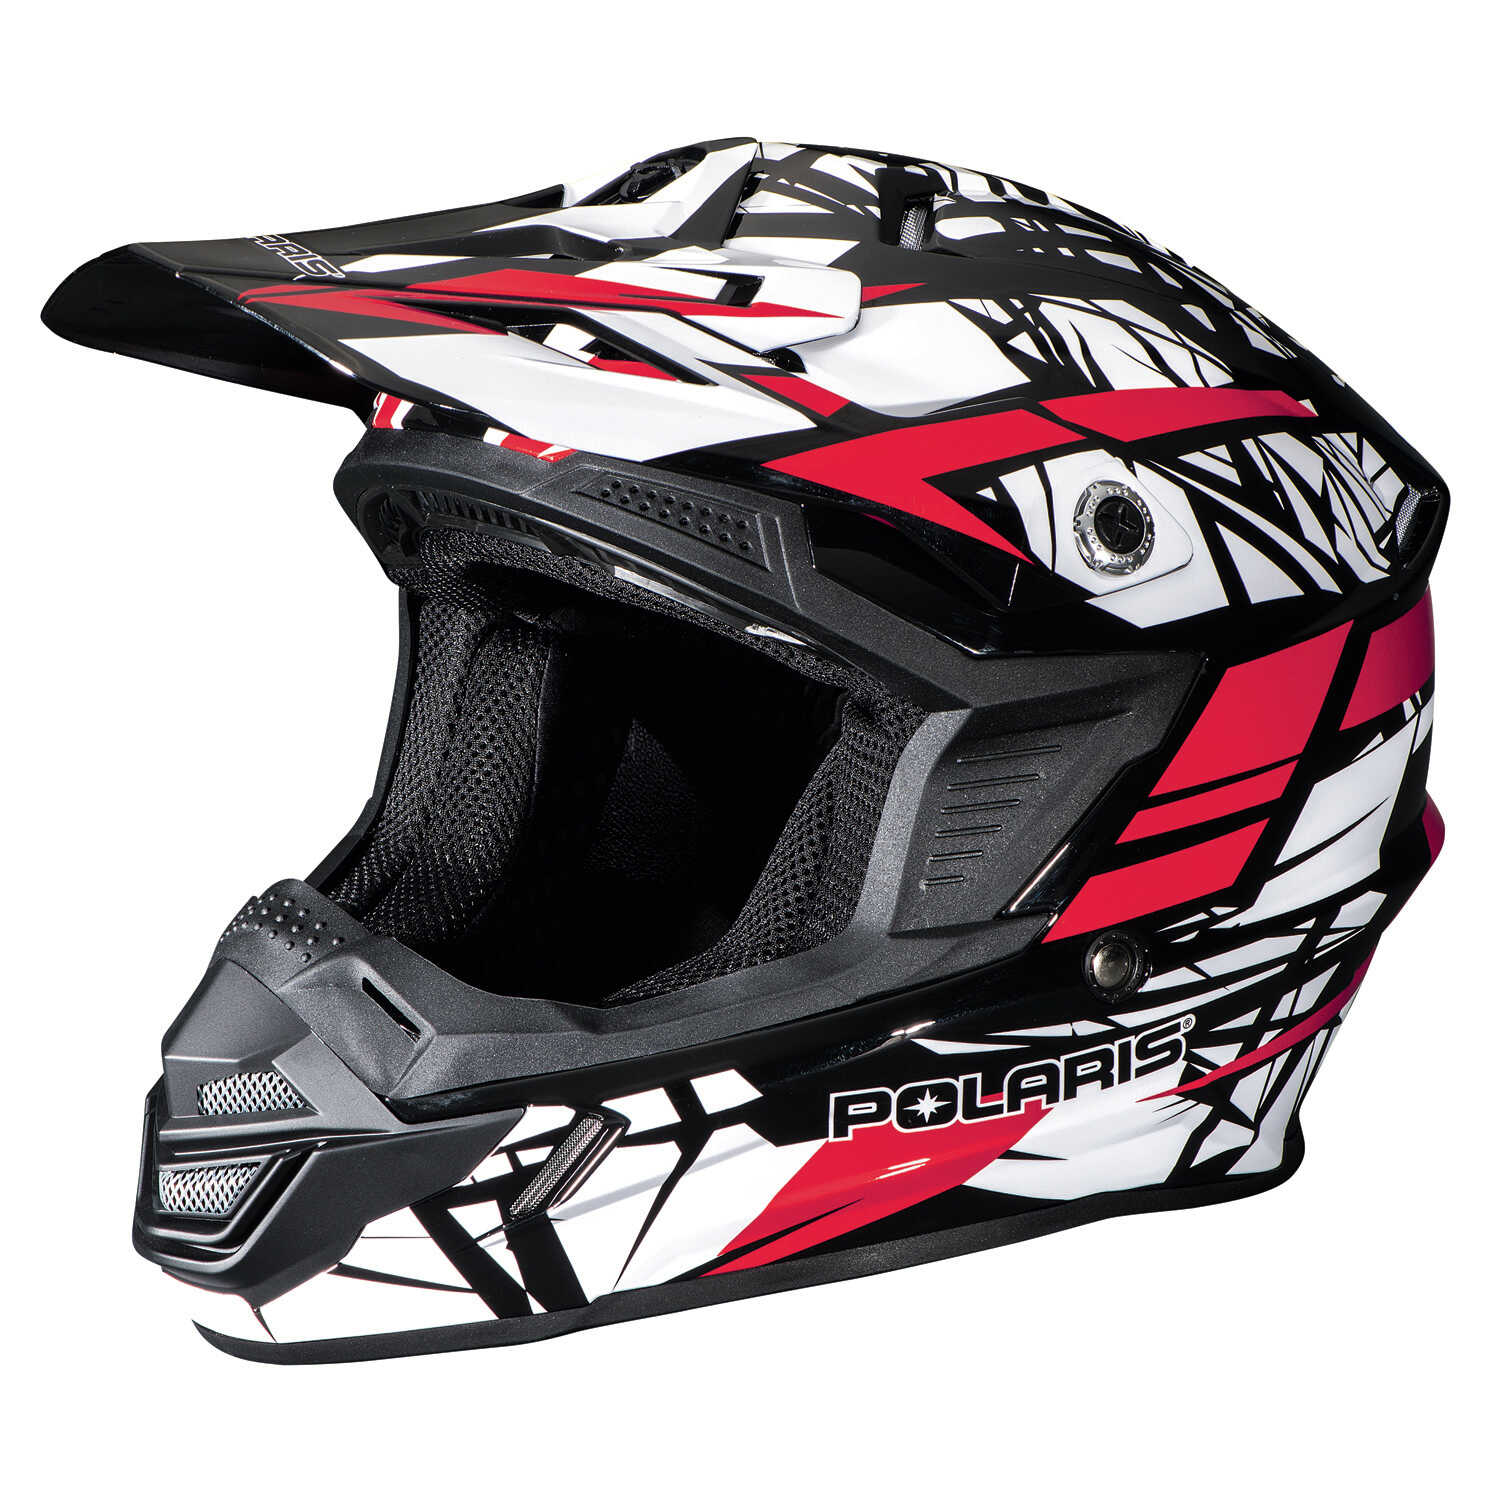 Tenacity Adult Moto Helmet with Removable Liner, Red